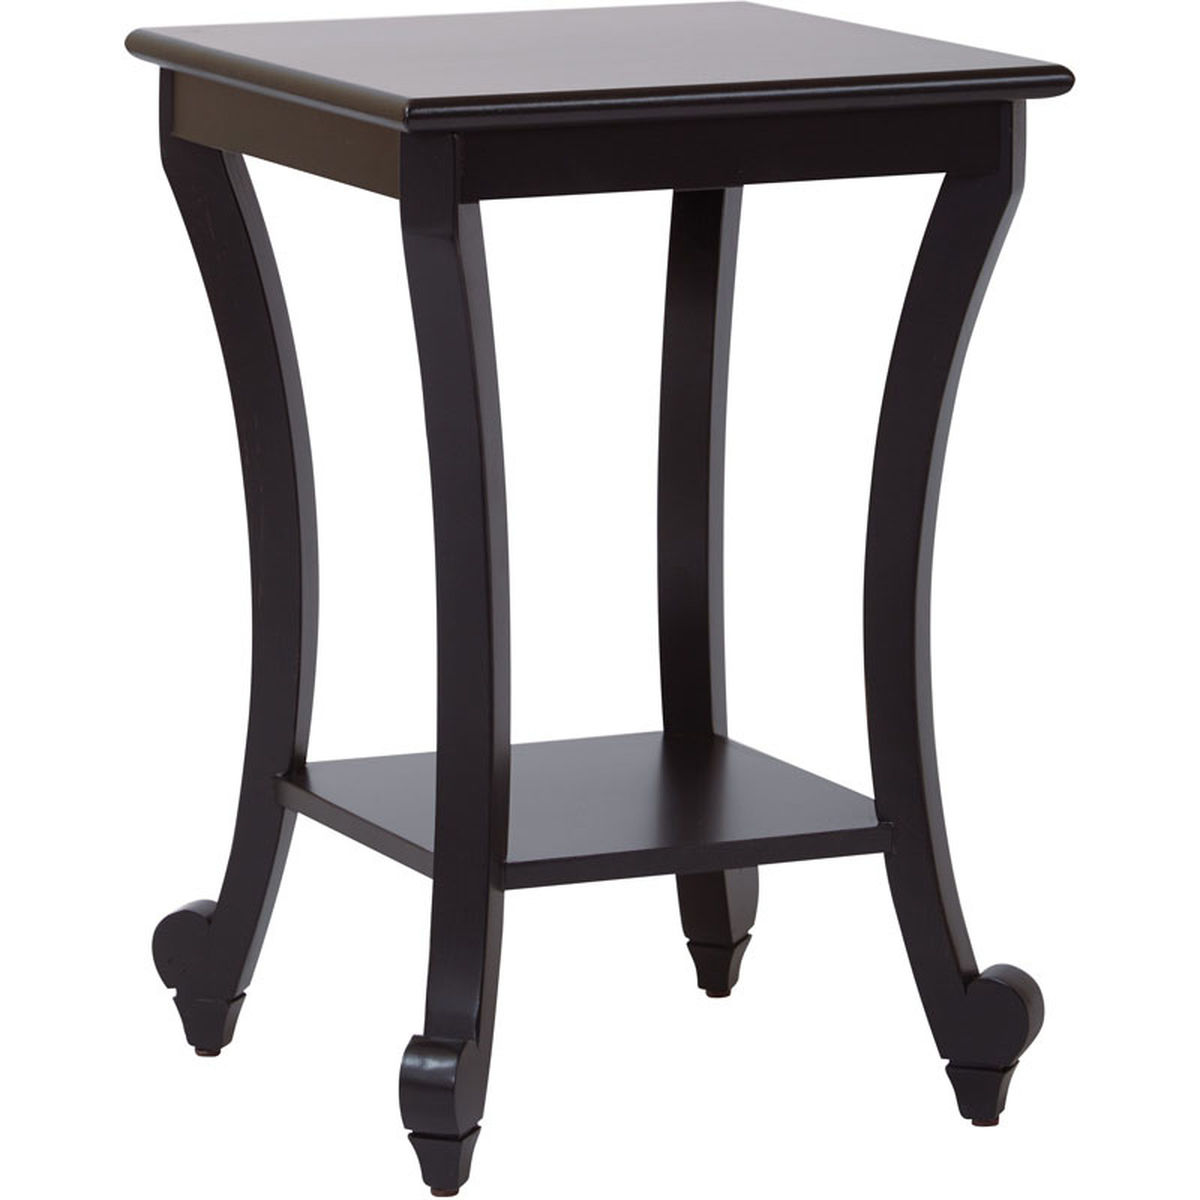 daren black accent table bizchair office star products main antique our osp designs now latin percussion instruments cherry end tables centre for drawing room cube storage unit